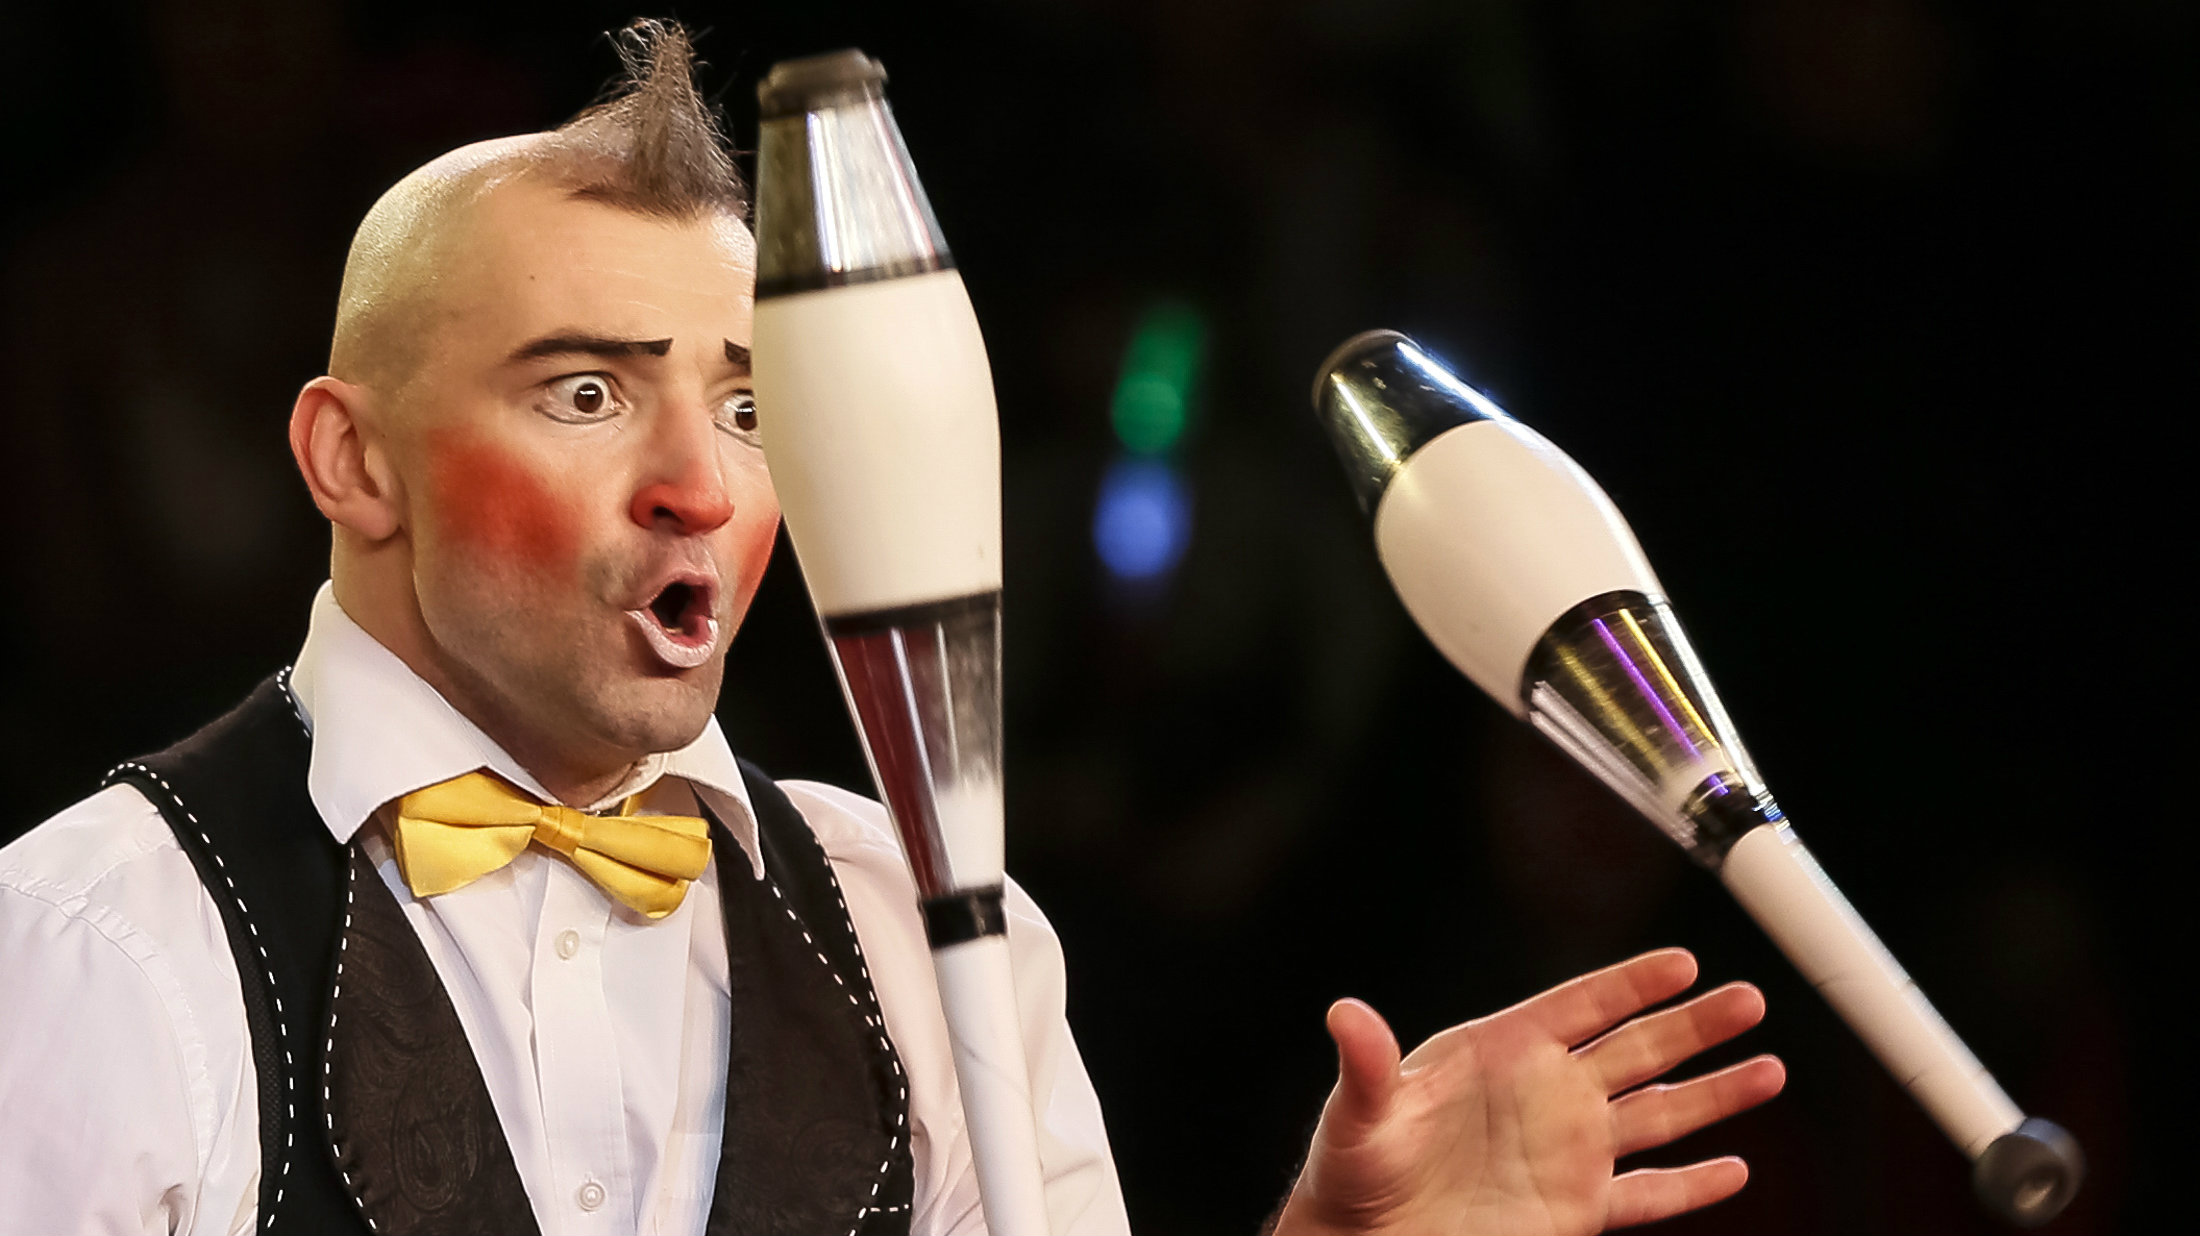 """A juggler performs during """"Circus of our childhood"""", a new programme, at the National Circus in the Ukrainian capital of Kiev January 22, 2015. REUTERS/Gleb Garanich (UKRAINE - Tags: SOCIETY)"""